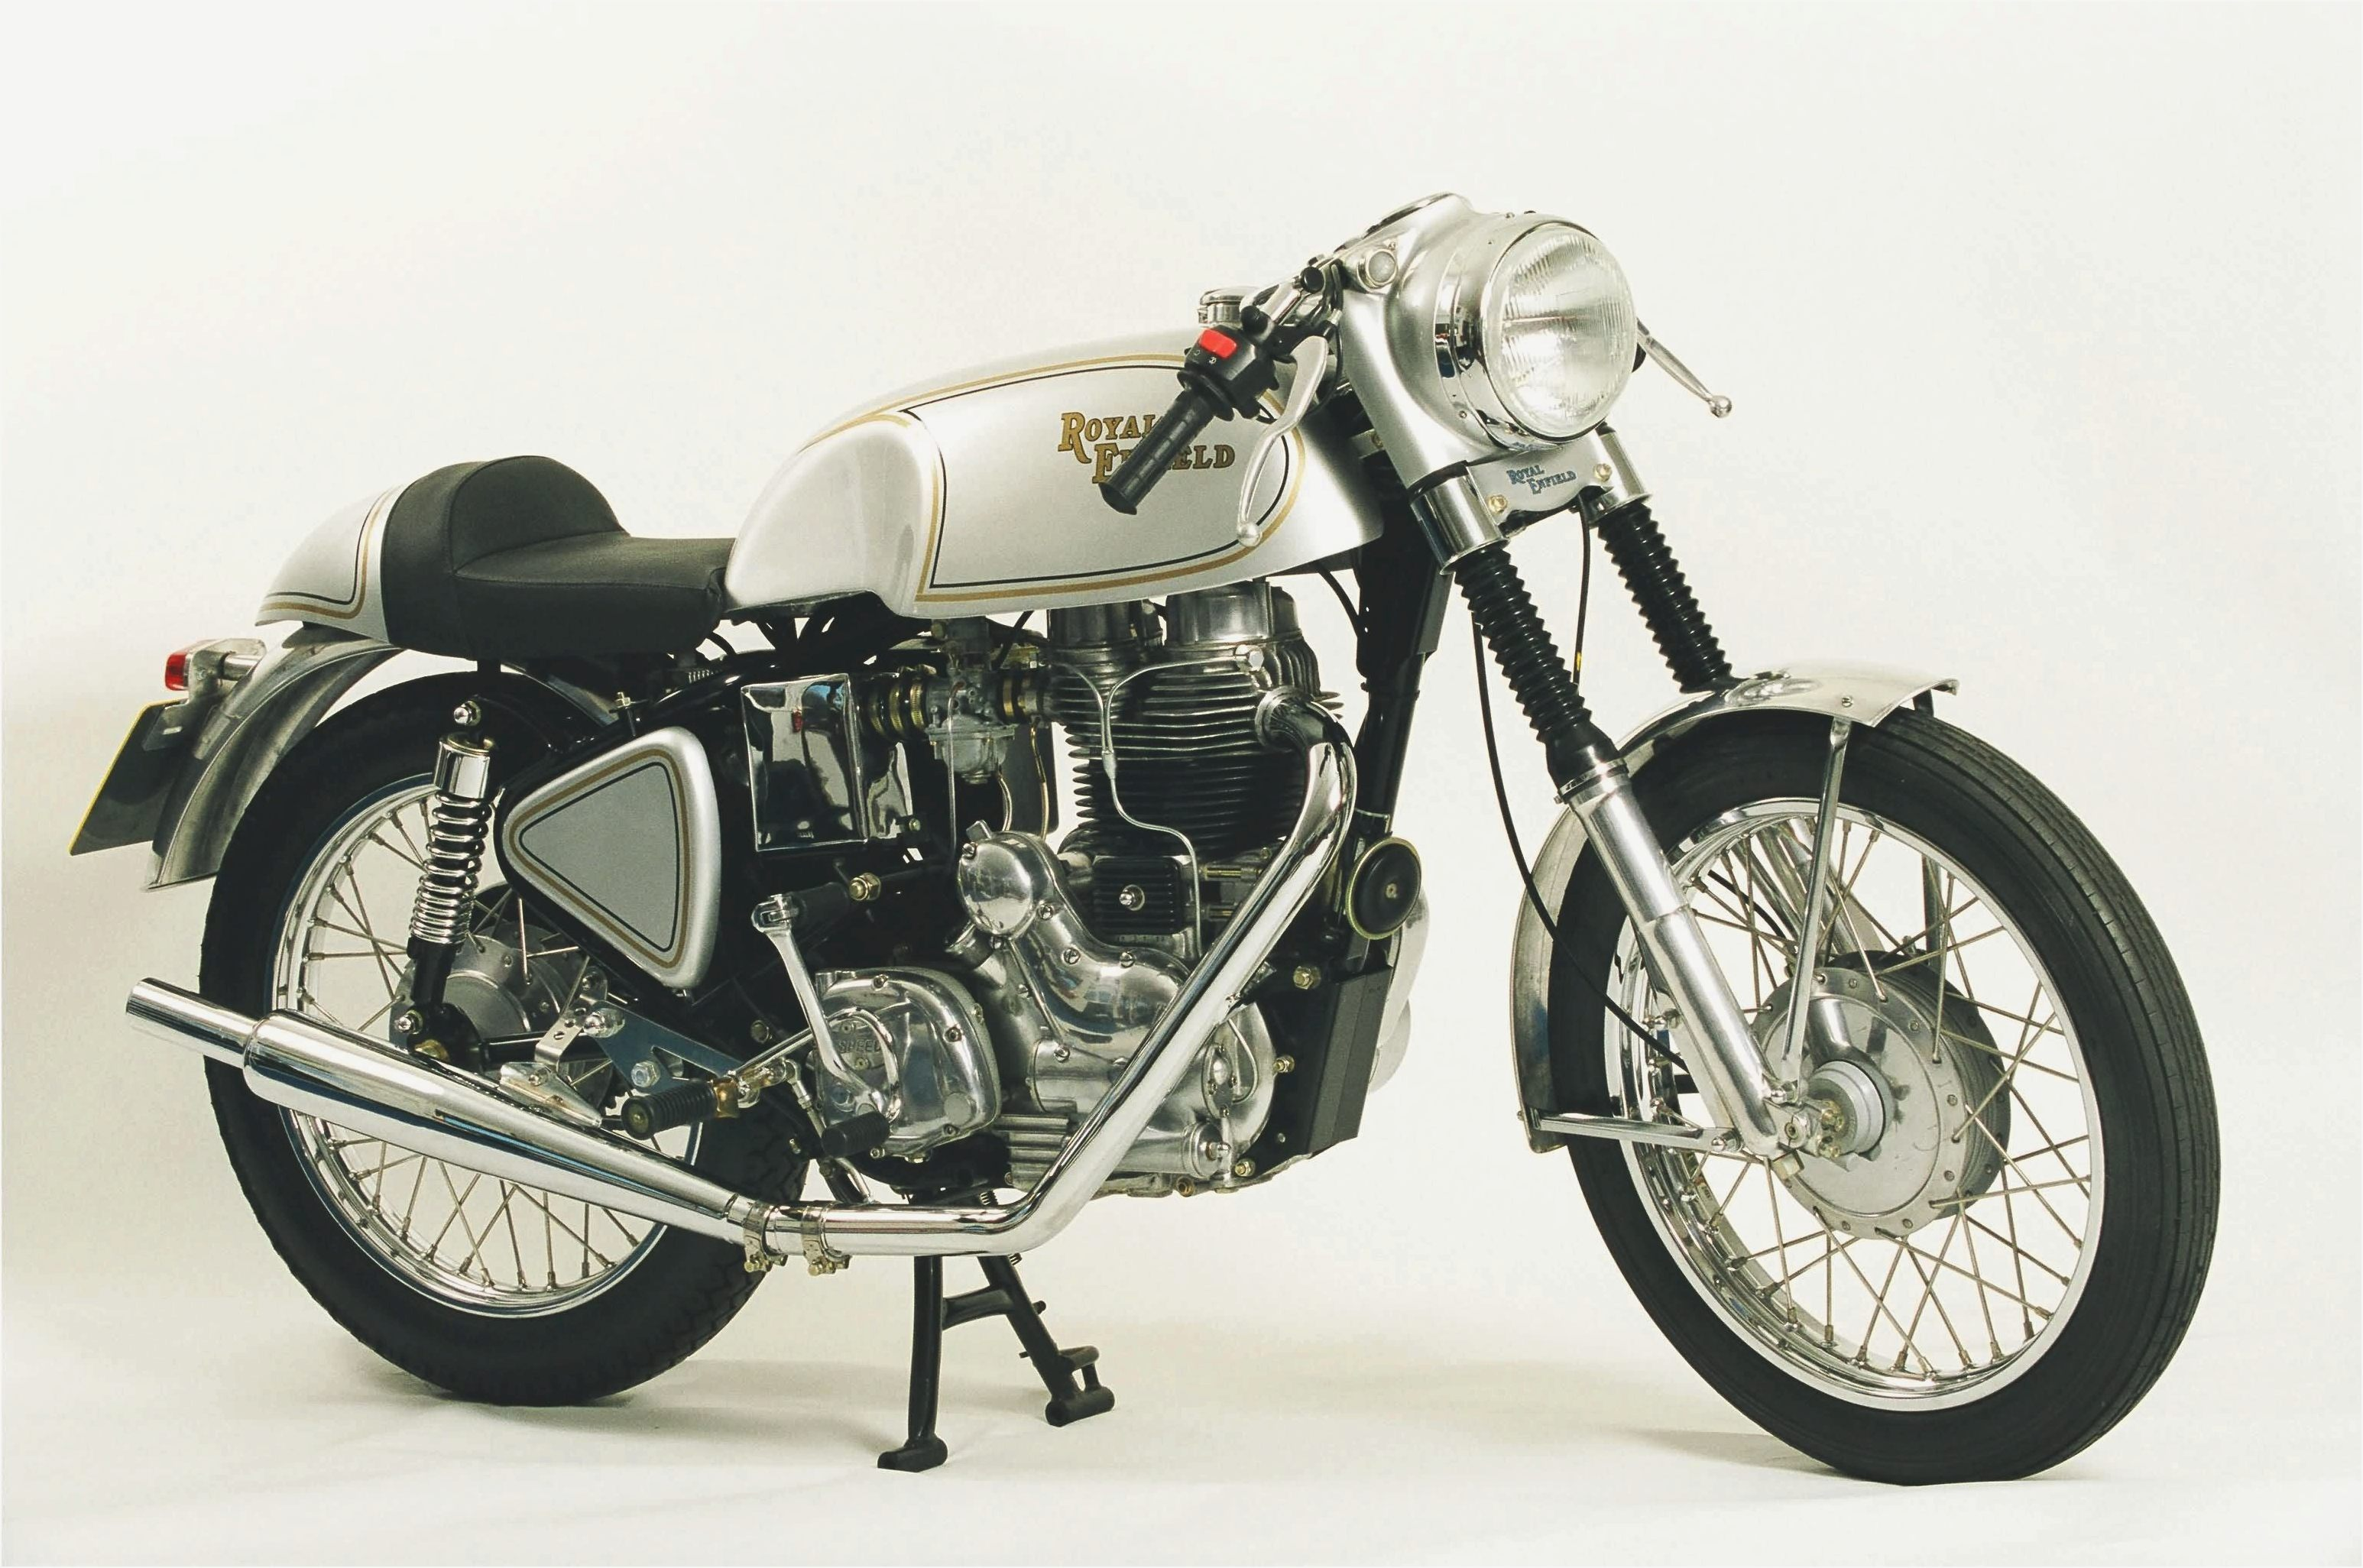 Royal Enfield Bullet 500 S Clubman 2001 images #122981